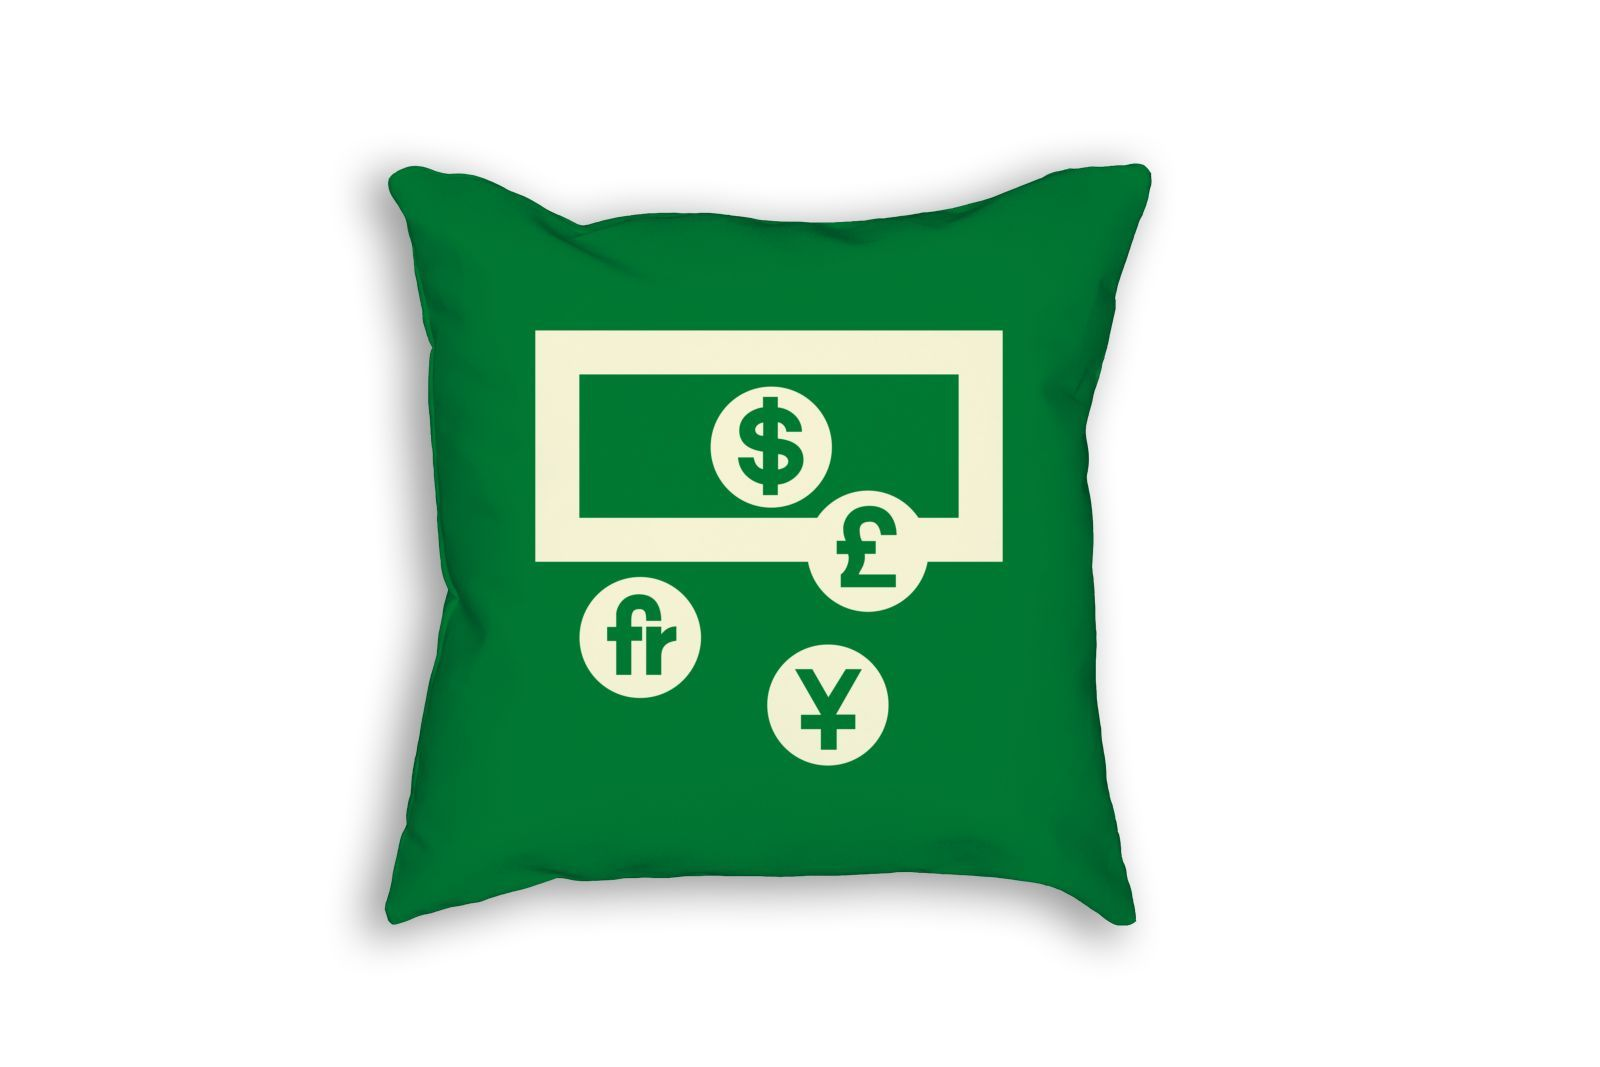 Currency exchange symbol graphic design pillow symbols currency exchange symbol graphic design pillow biocorpaavc Images